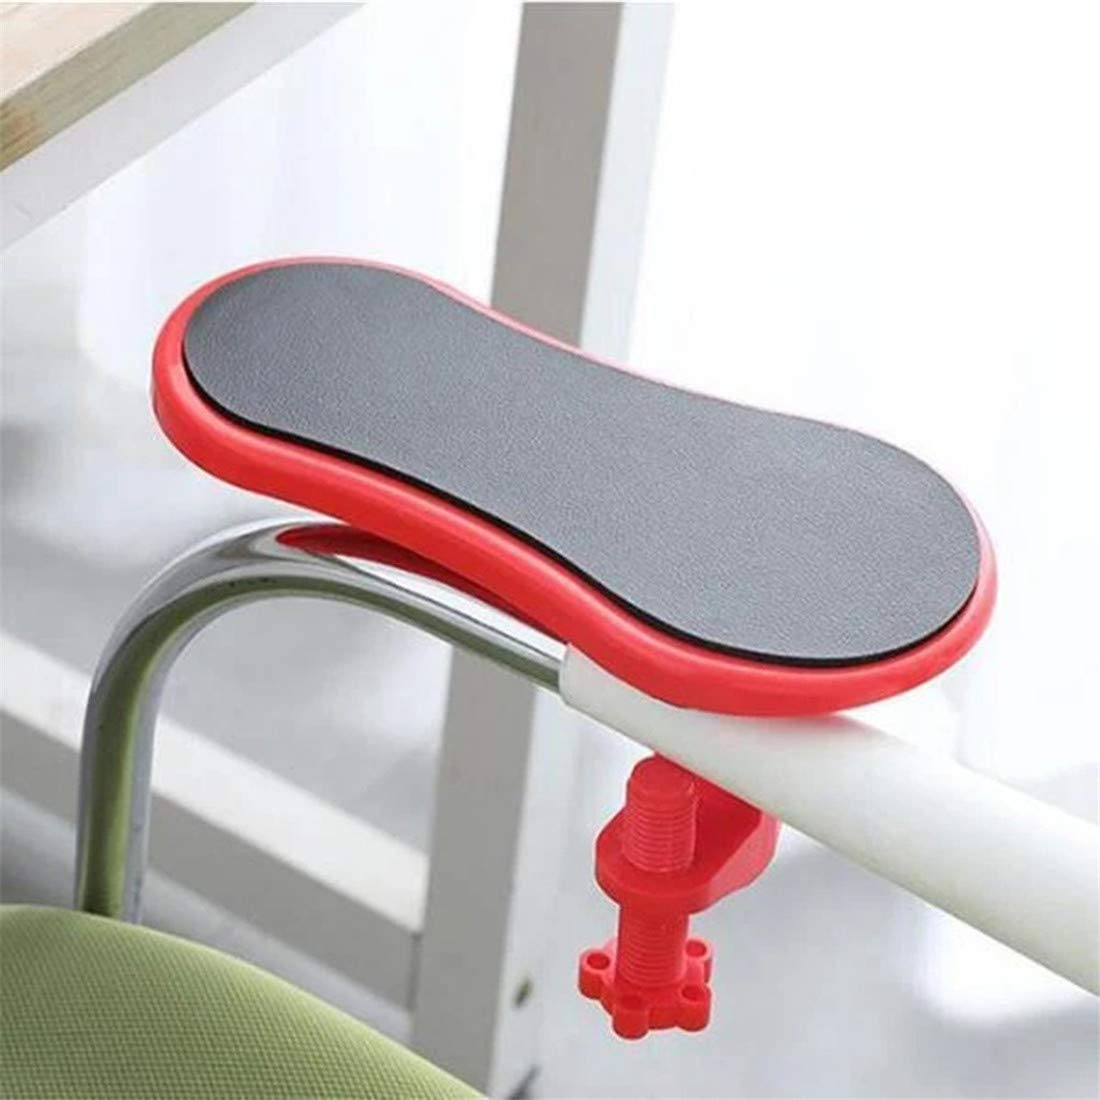 Freeby Desk Attachable Wrist Rest Rotated Computer Arm Bracket Support Mouse Pad